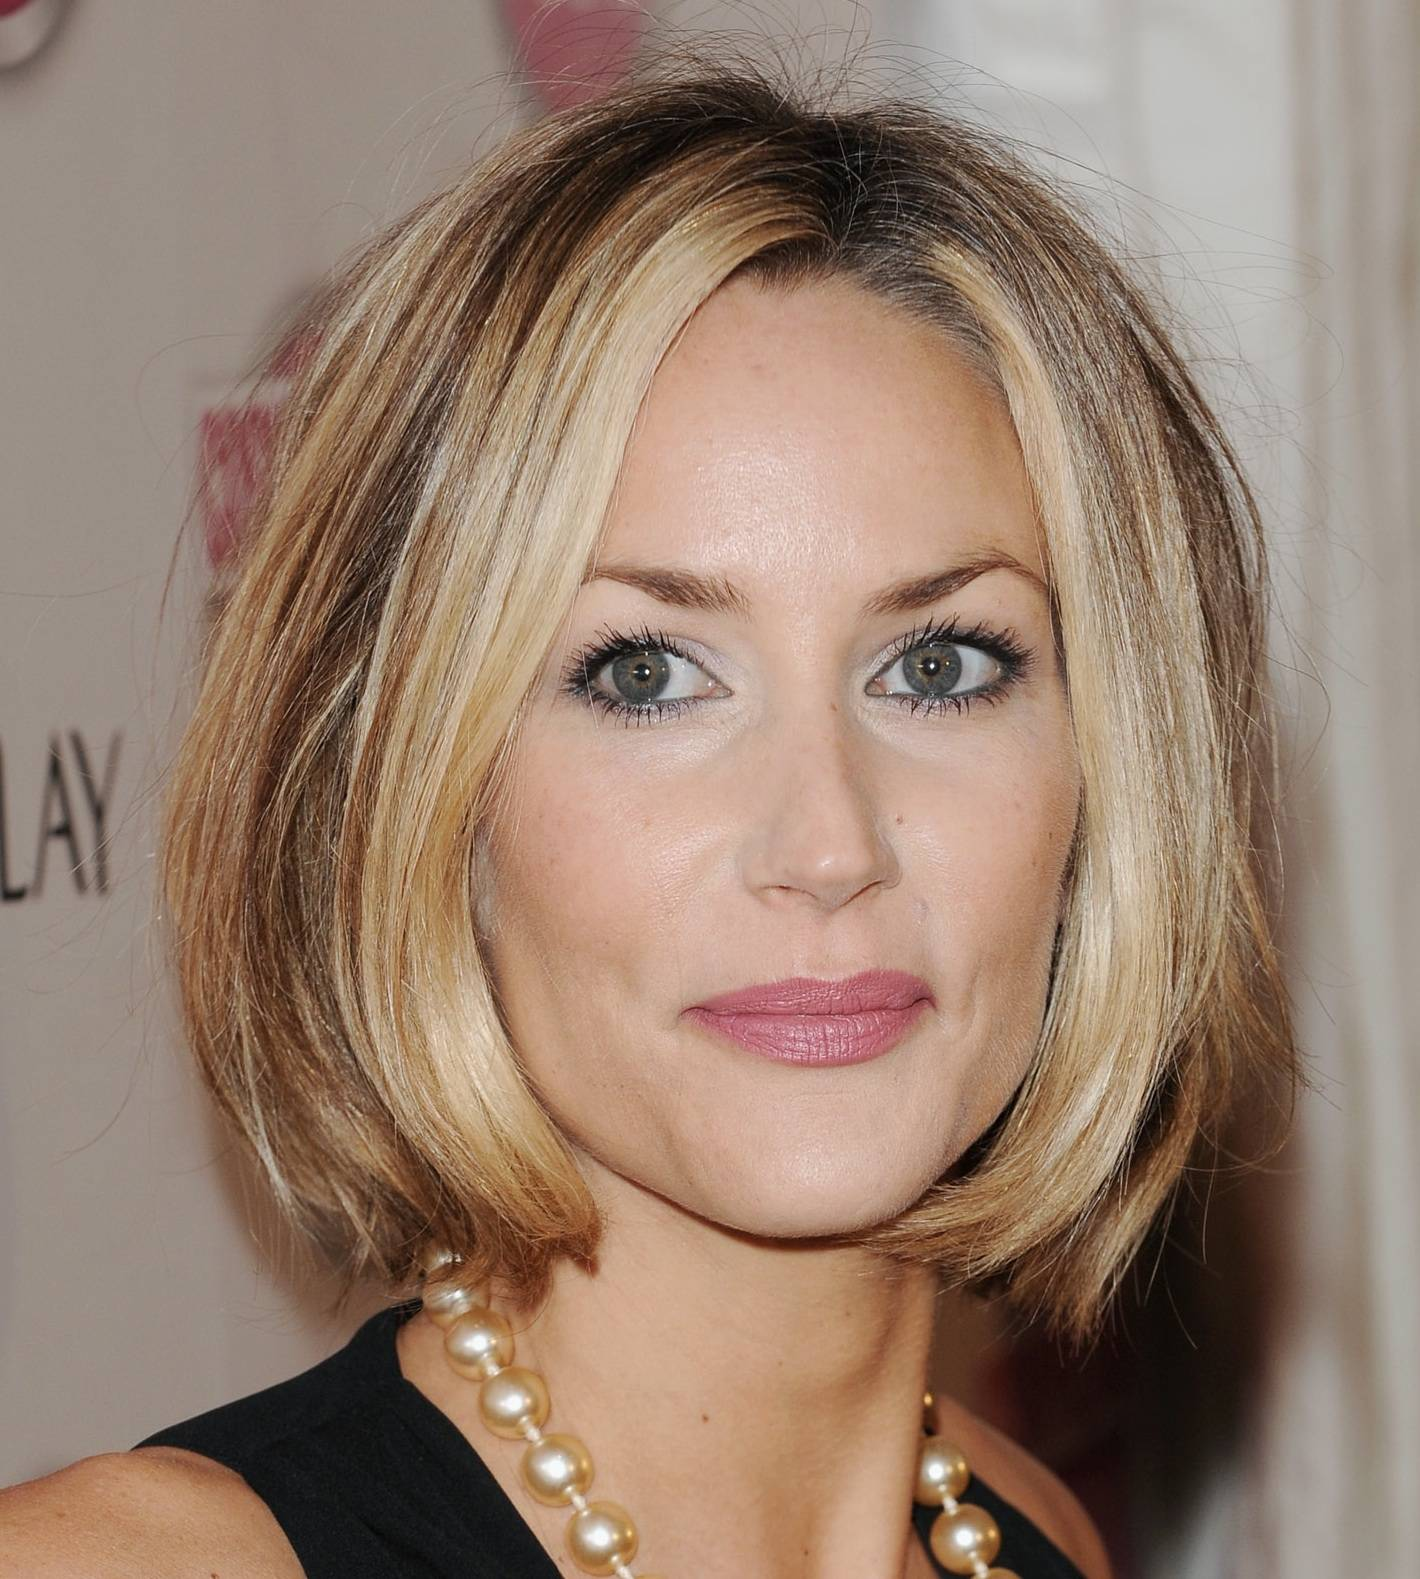 Inverted Bob Hairstyles for Women 2013 The Best Pictures Collection About Hairstyles and Fashion